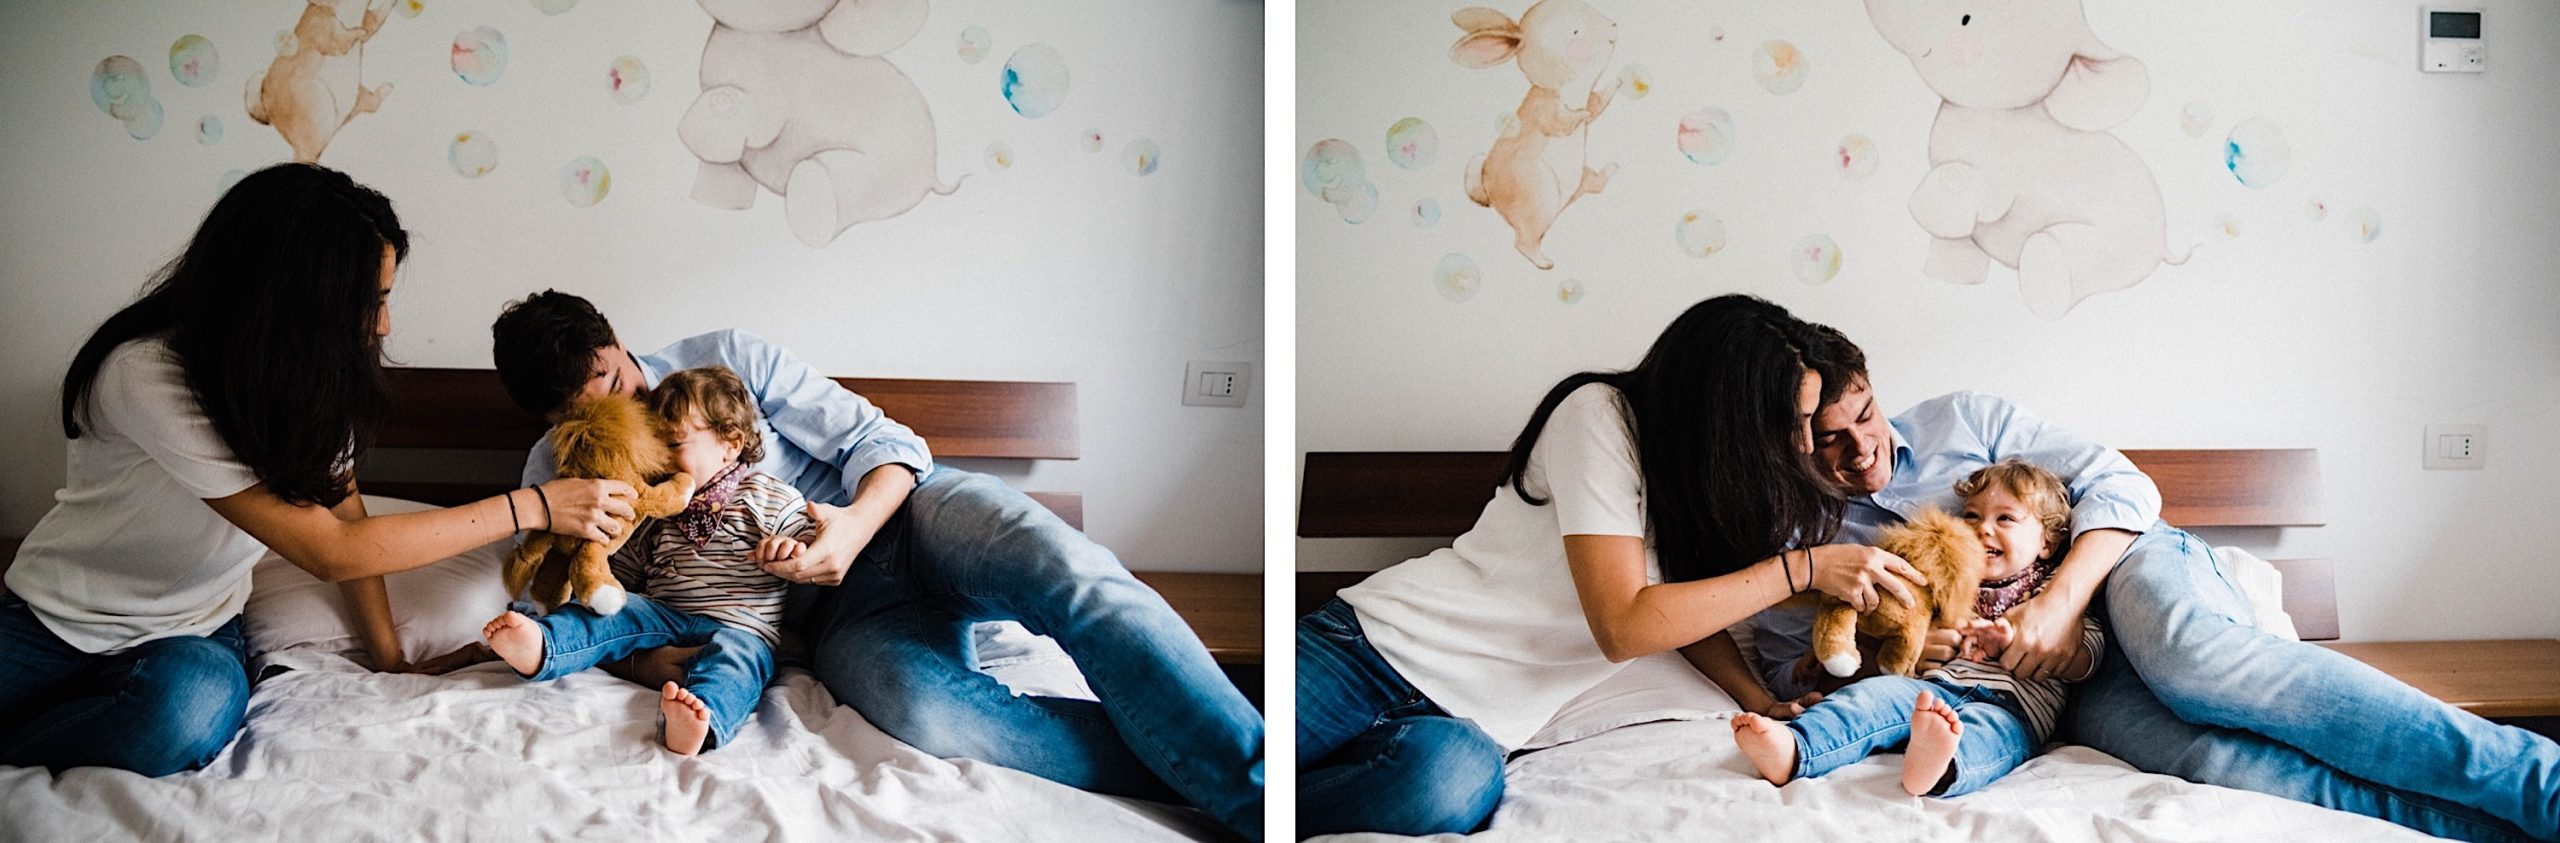 Two family portraits, side by side, of a Mum & Dad tickling their toddler and making him laugh. Both photos taken during an In-Home Family Photography session in Milan, Italy.